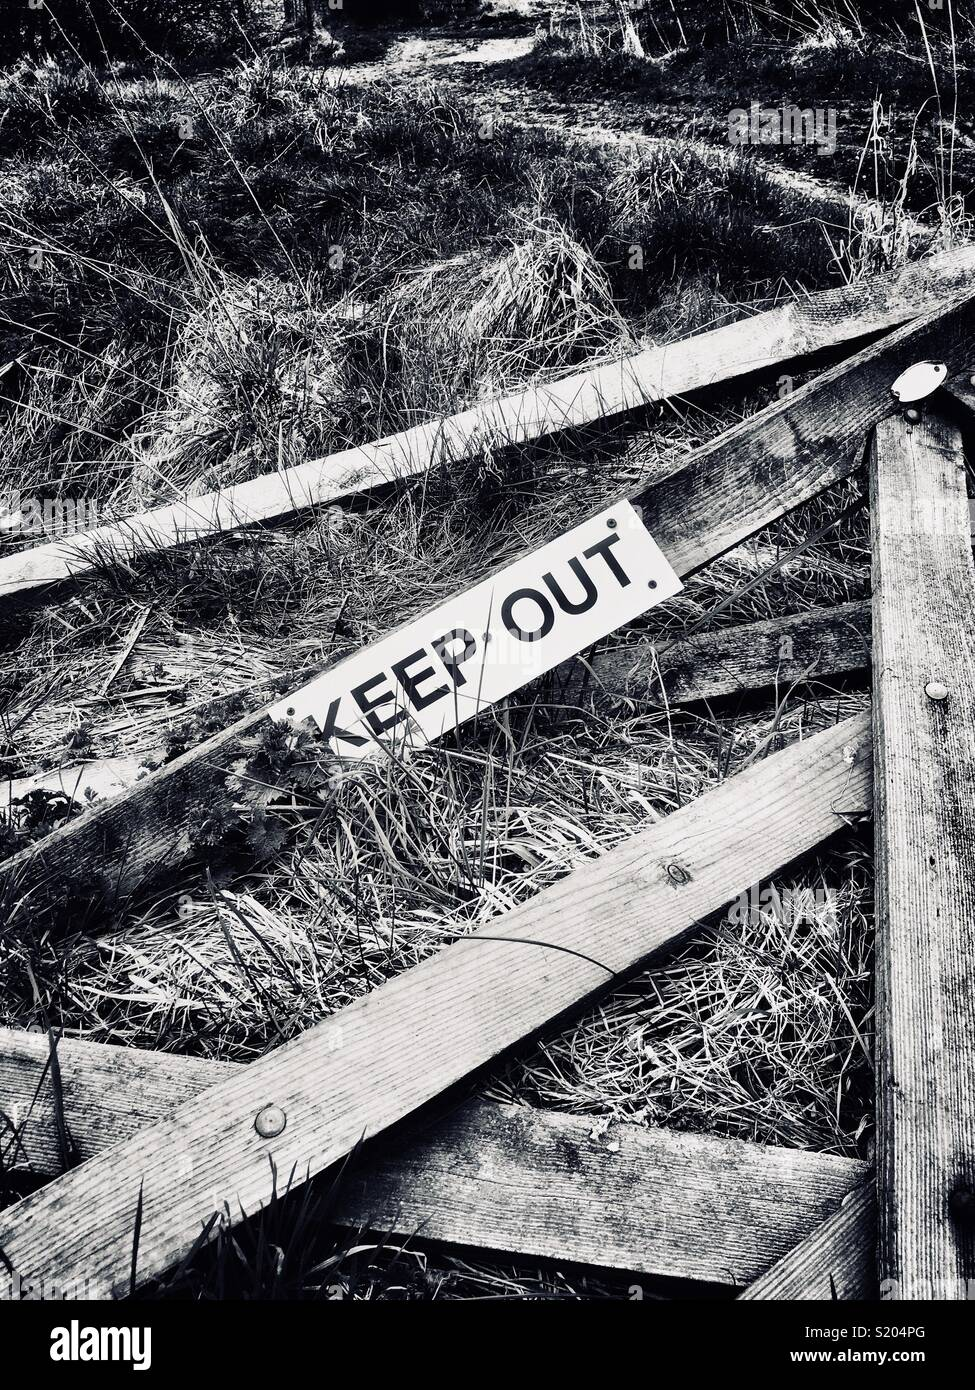 Broken wooden gate on farmland with a keep out sign attached - Stock Image